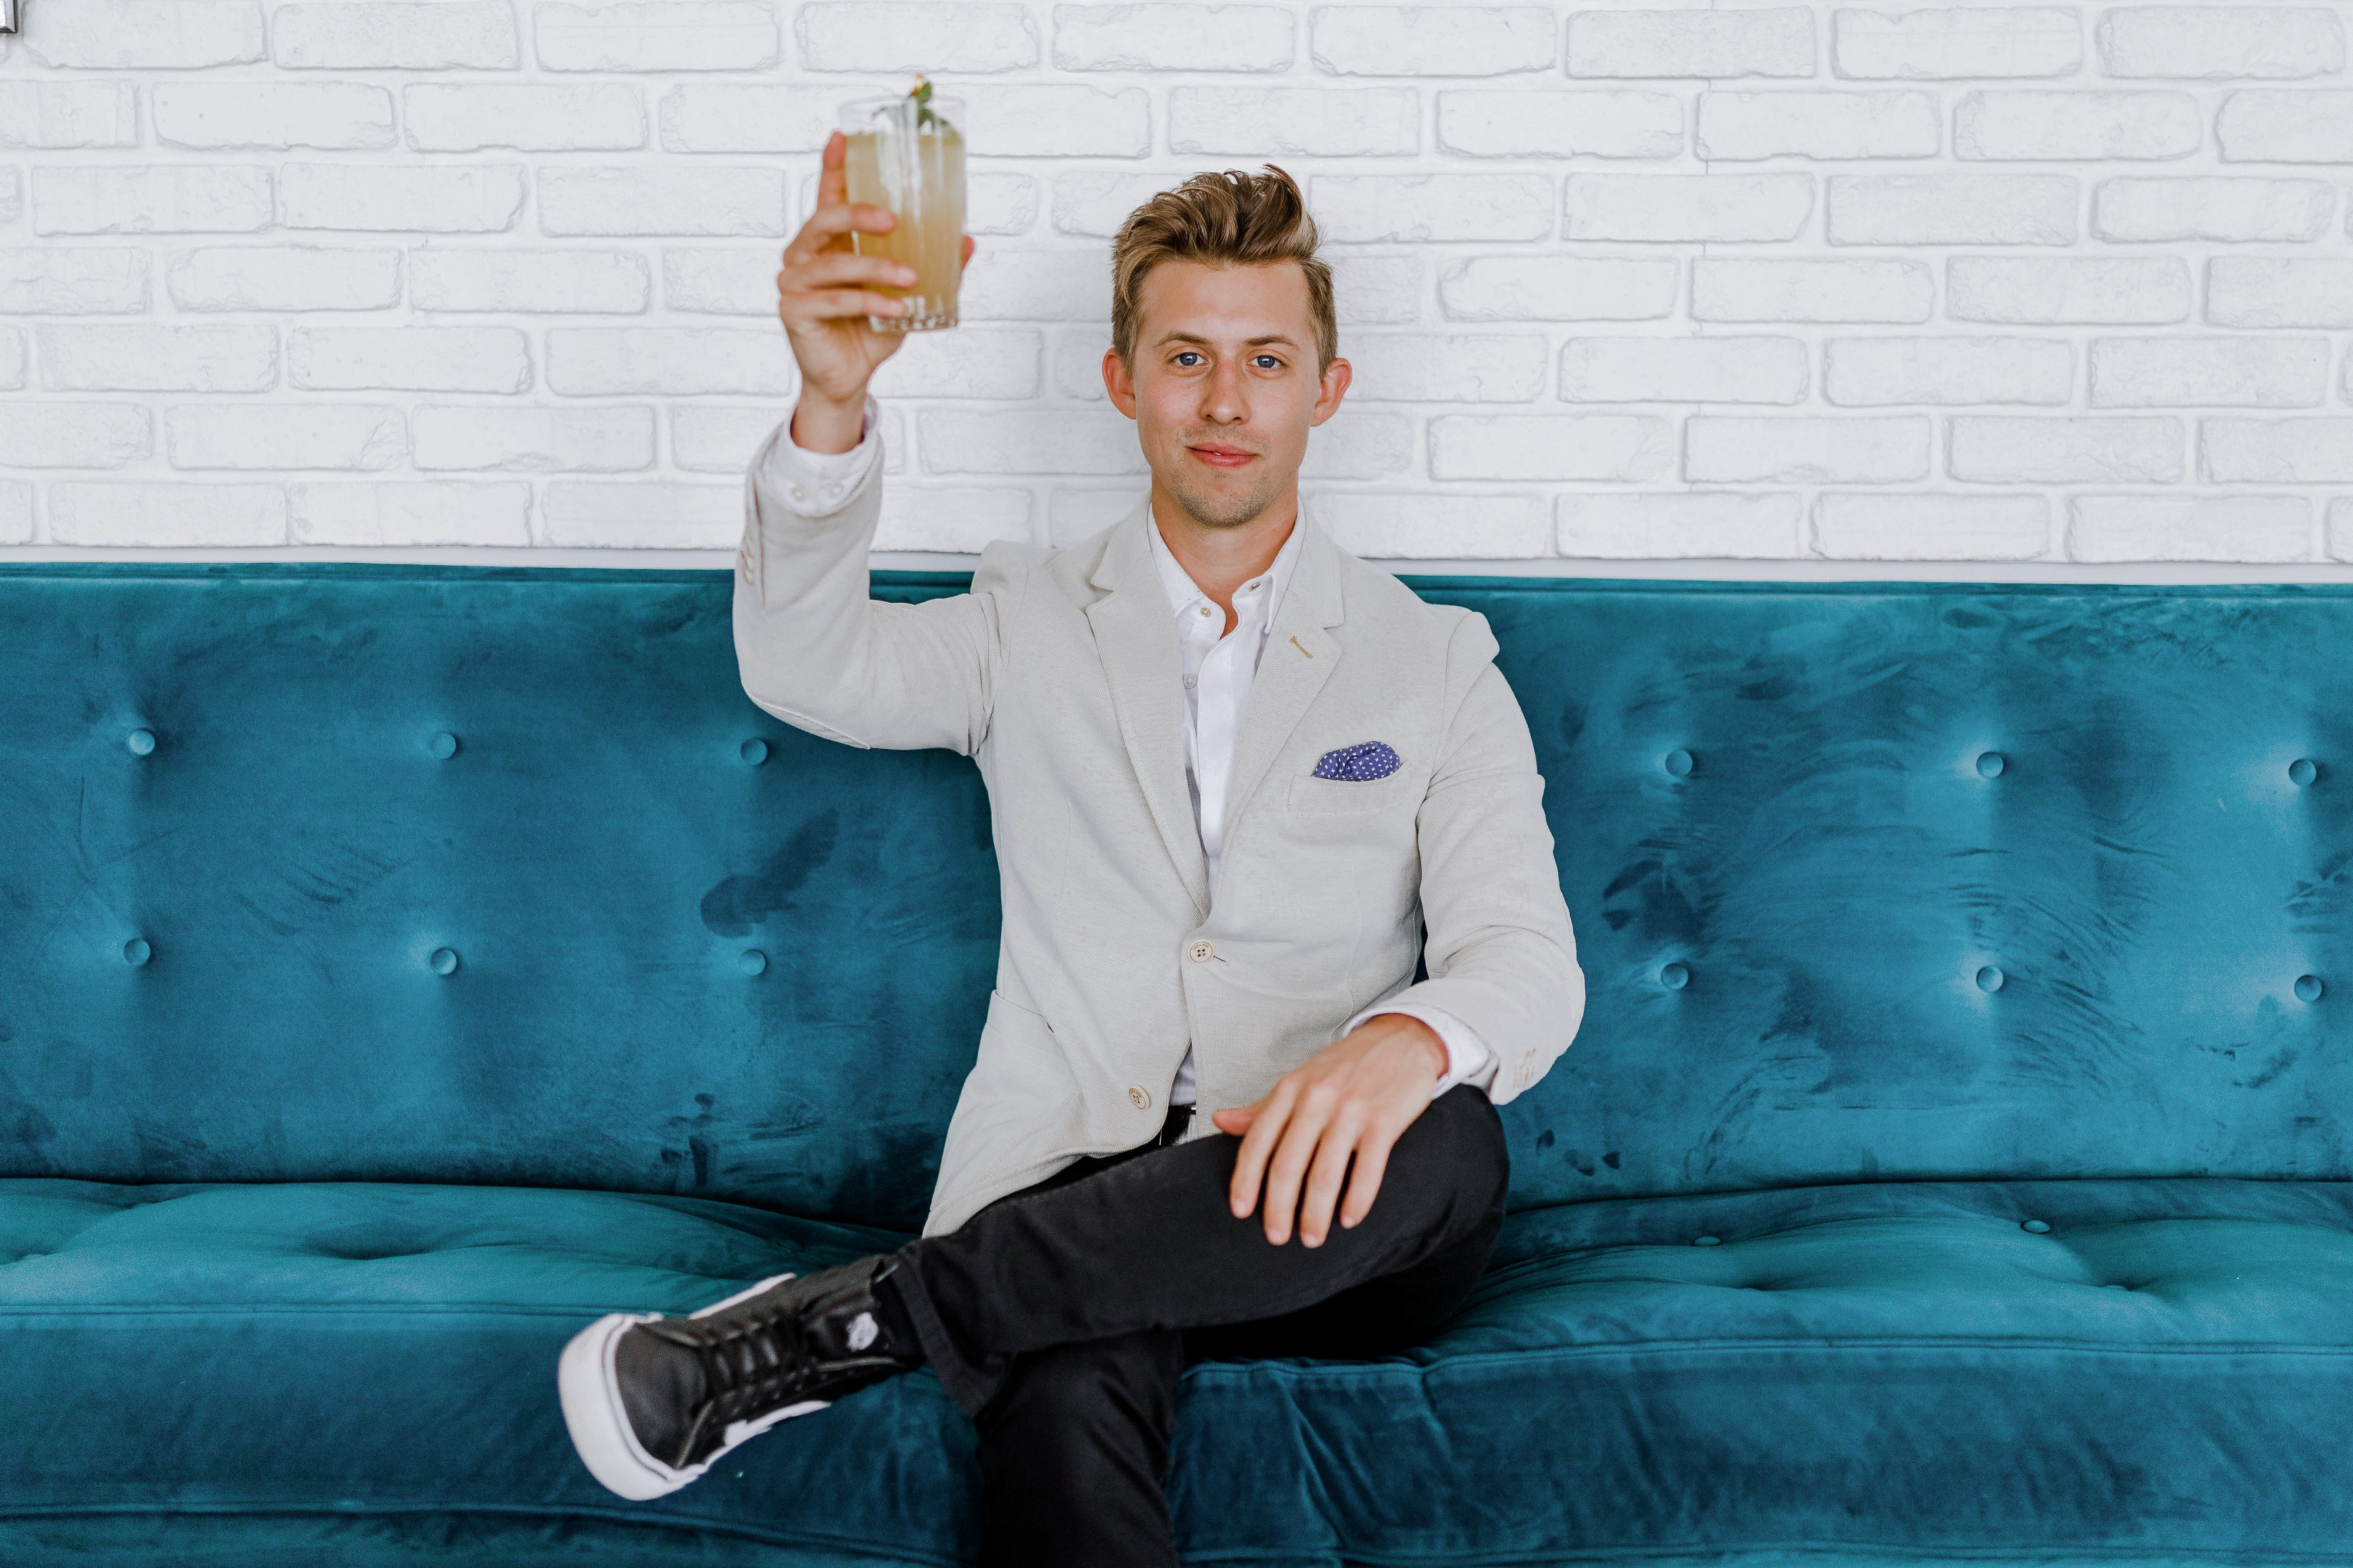 A man toasting himself alone on a couch